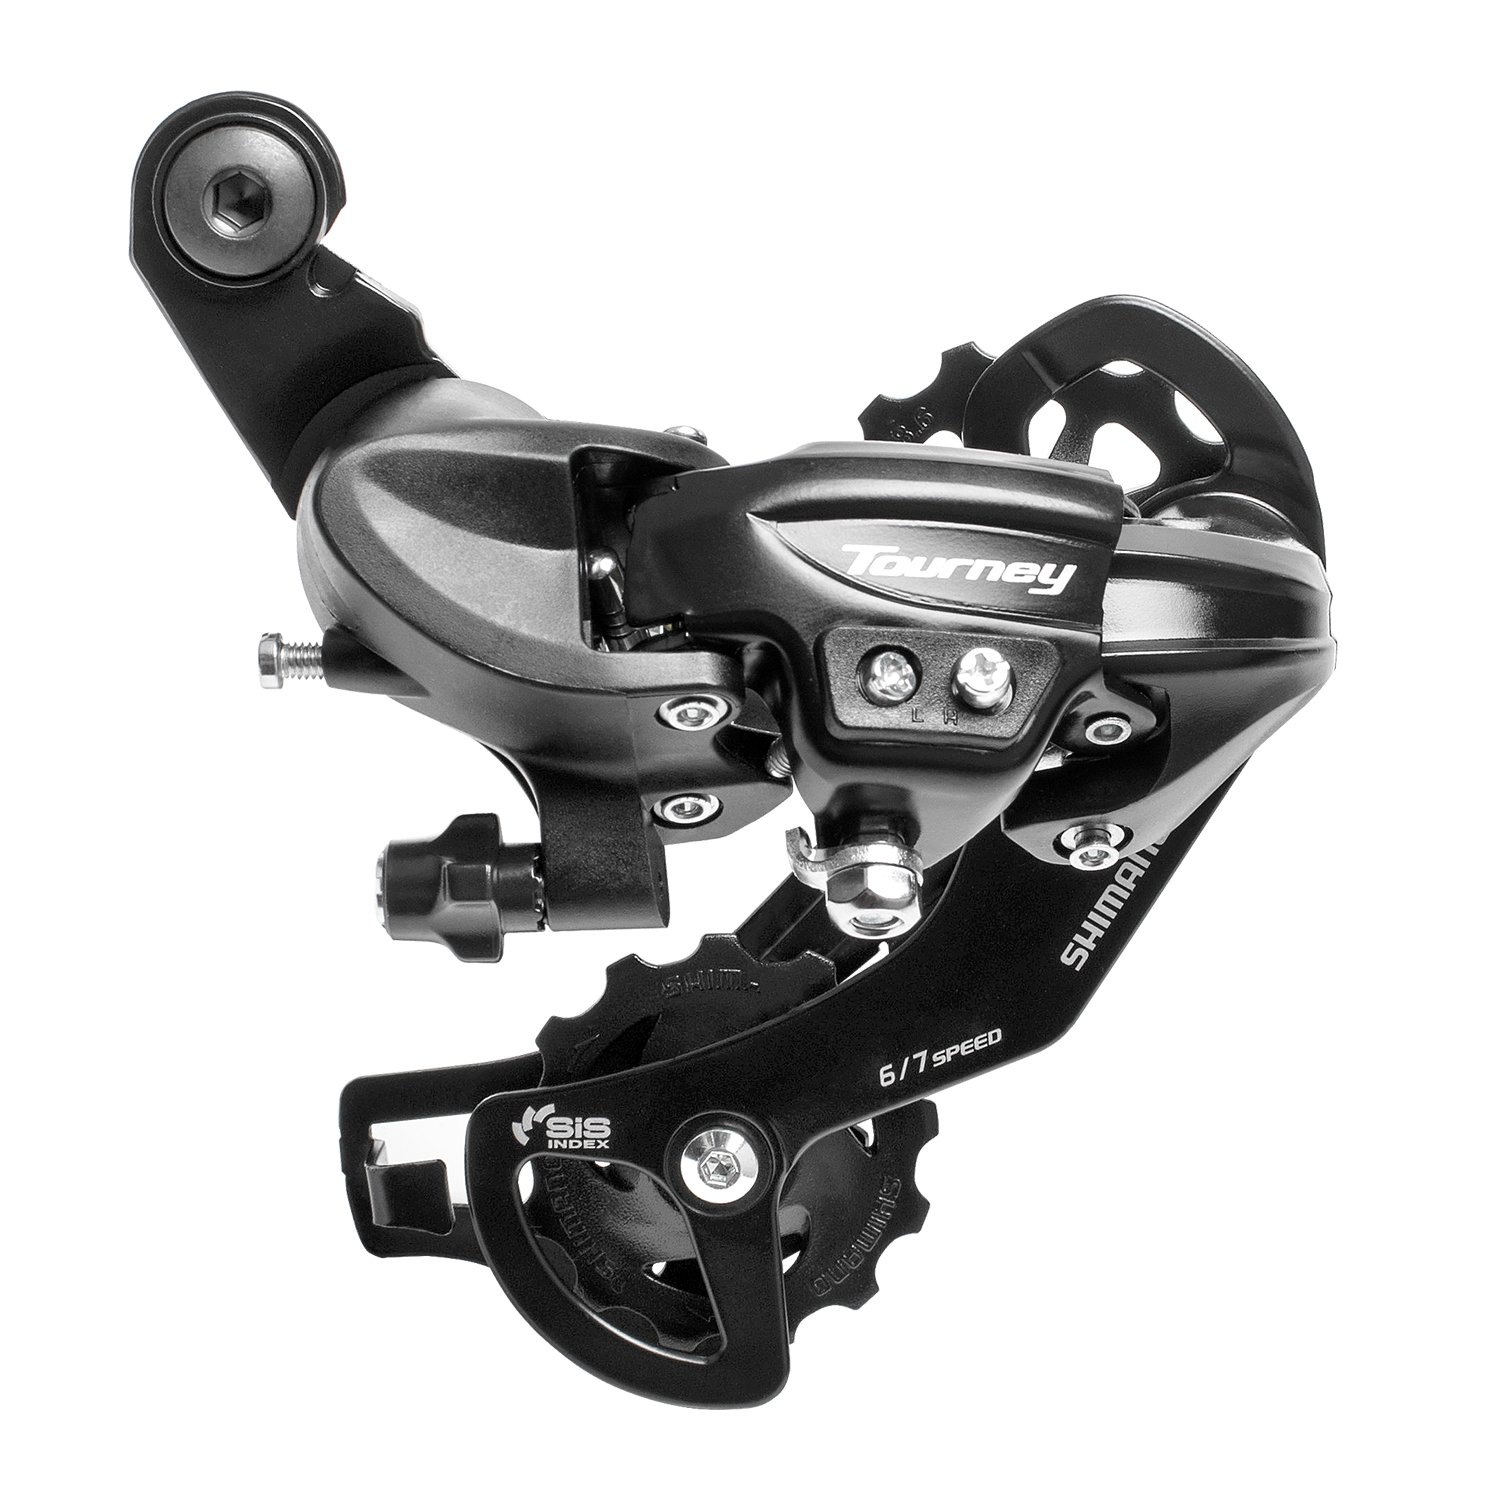 Shimano Tourney Rear Derailleur RD-TY300 6/7 Speed SGS Direct Mount